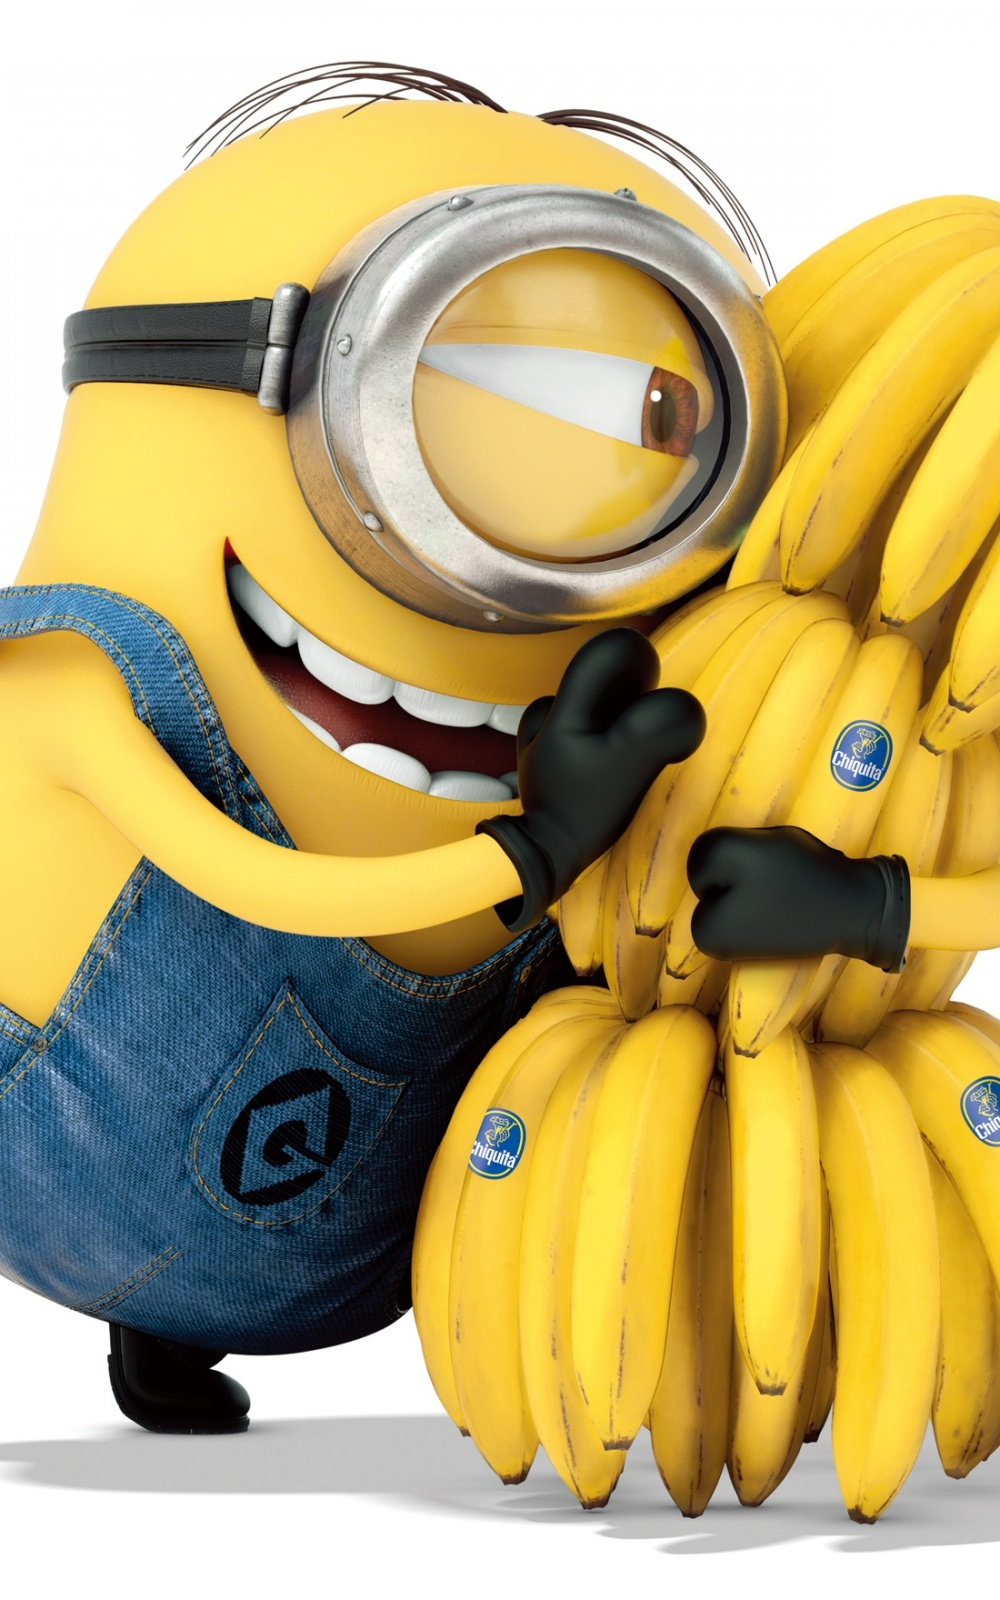 Free Download Despicable Me Minion Hugging Bananas Android